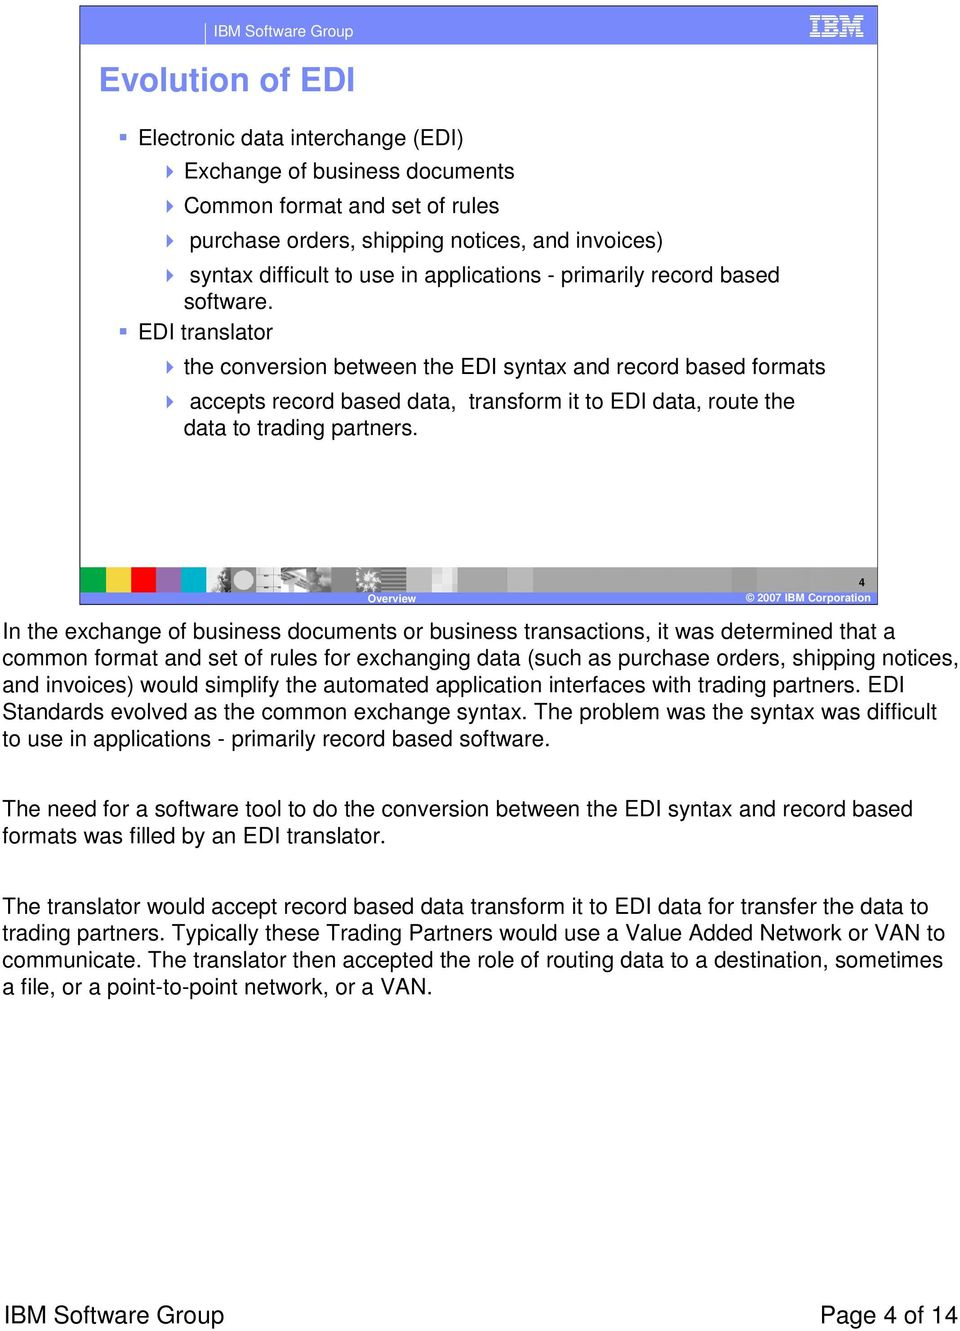 EDI translator the conversion between the EDI syntax and record based formats accepts record based data, transform it to EDI data, route the data to trading partners.